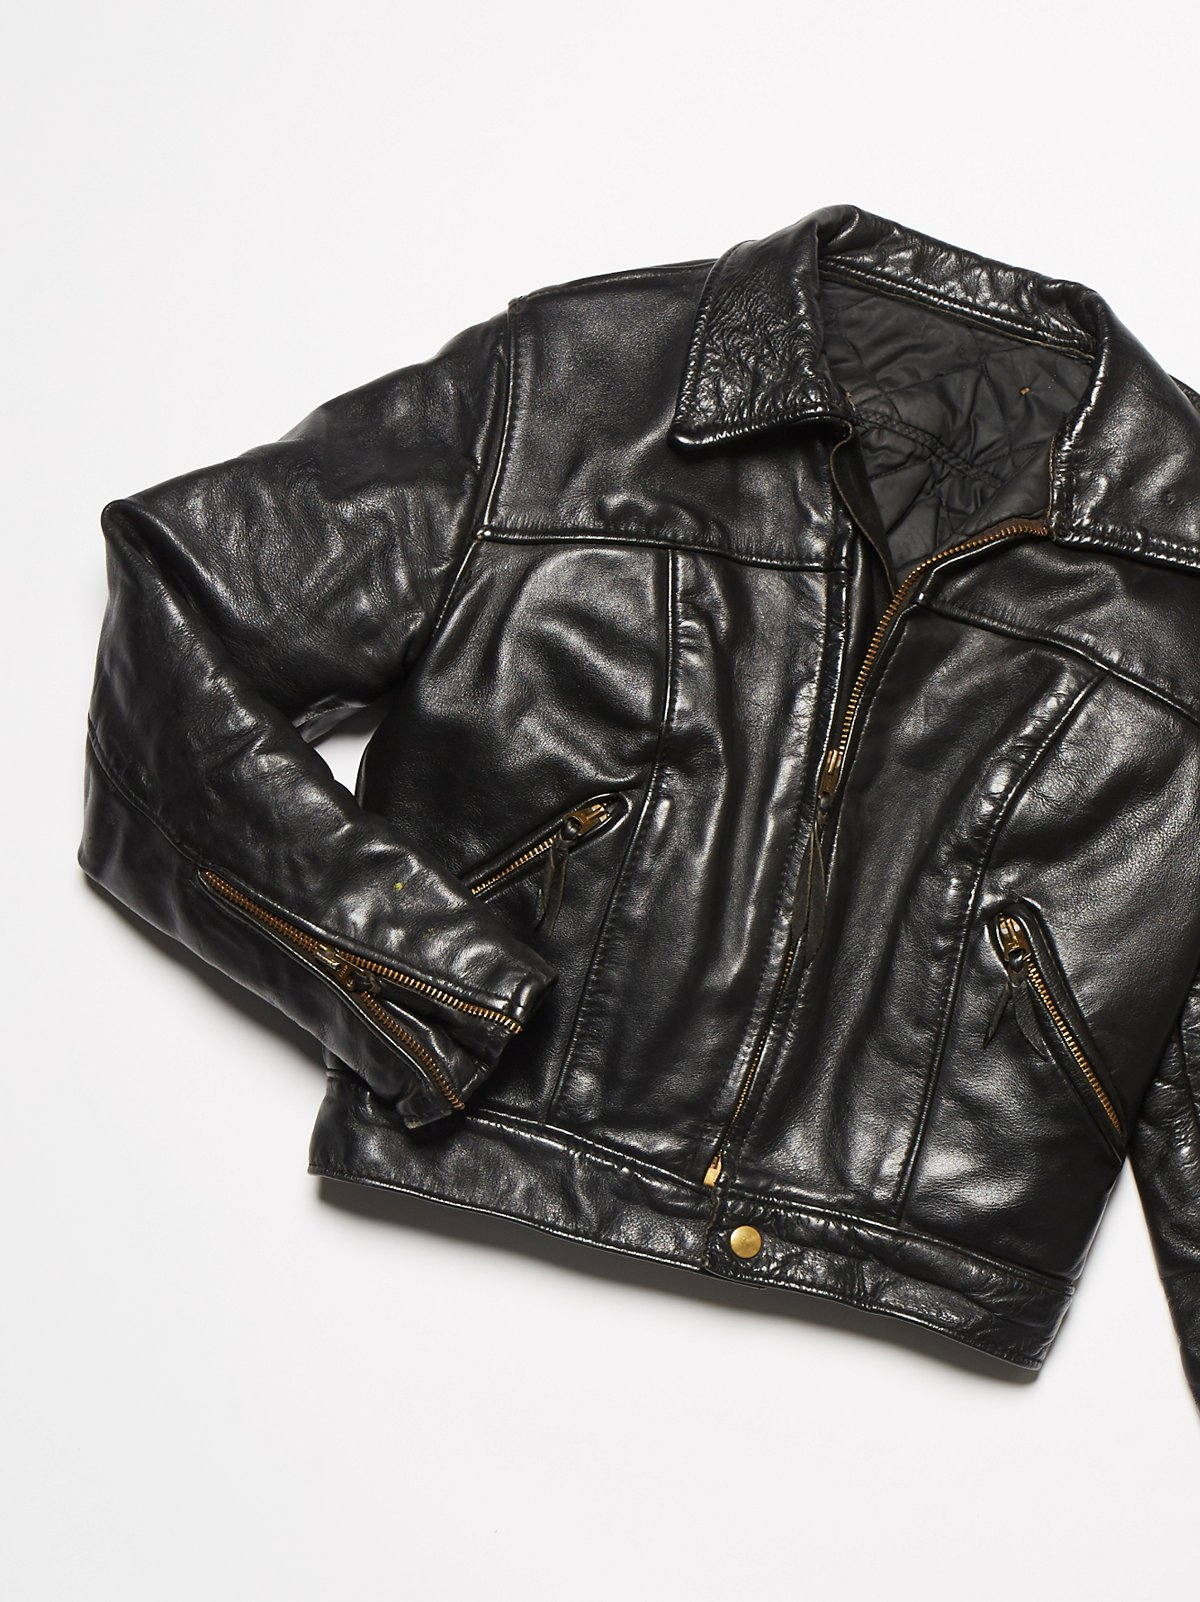 Vintage 1970s Leather Motorcycle Jacket